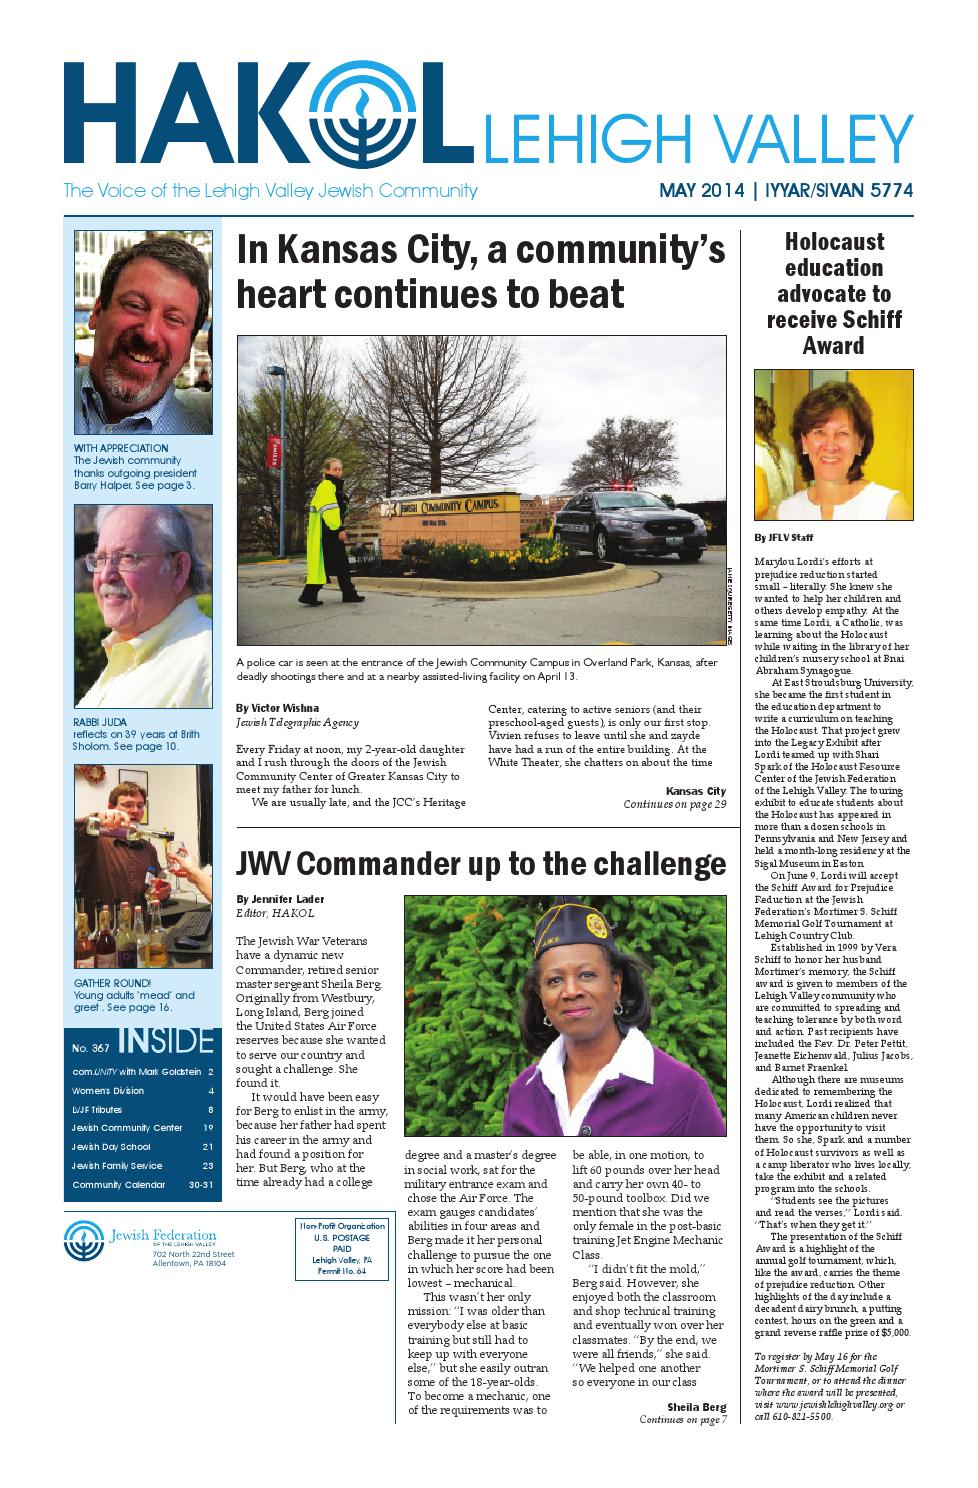 HAKOL May 2014 by Jewish Federation of the Lehigh Valley - issuu